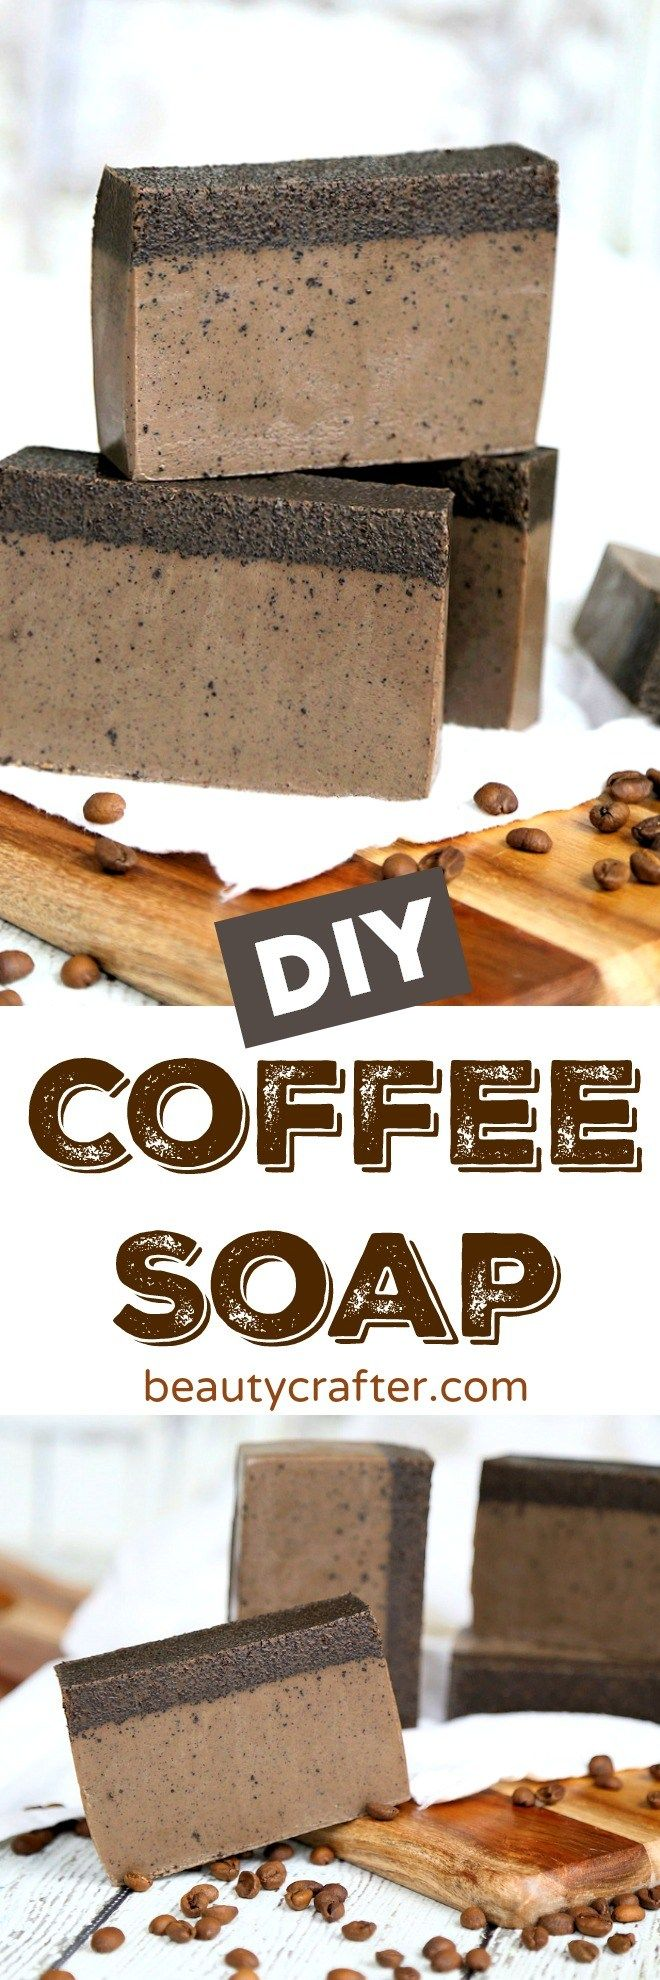 DIY Coffee Soap Recipe - Easy Melt and Pour Coffee Soap, perfect as a homemade gift